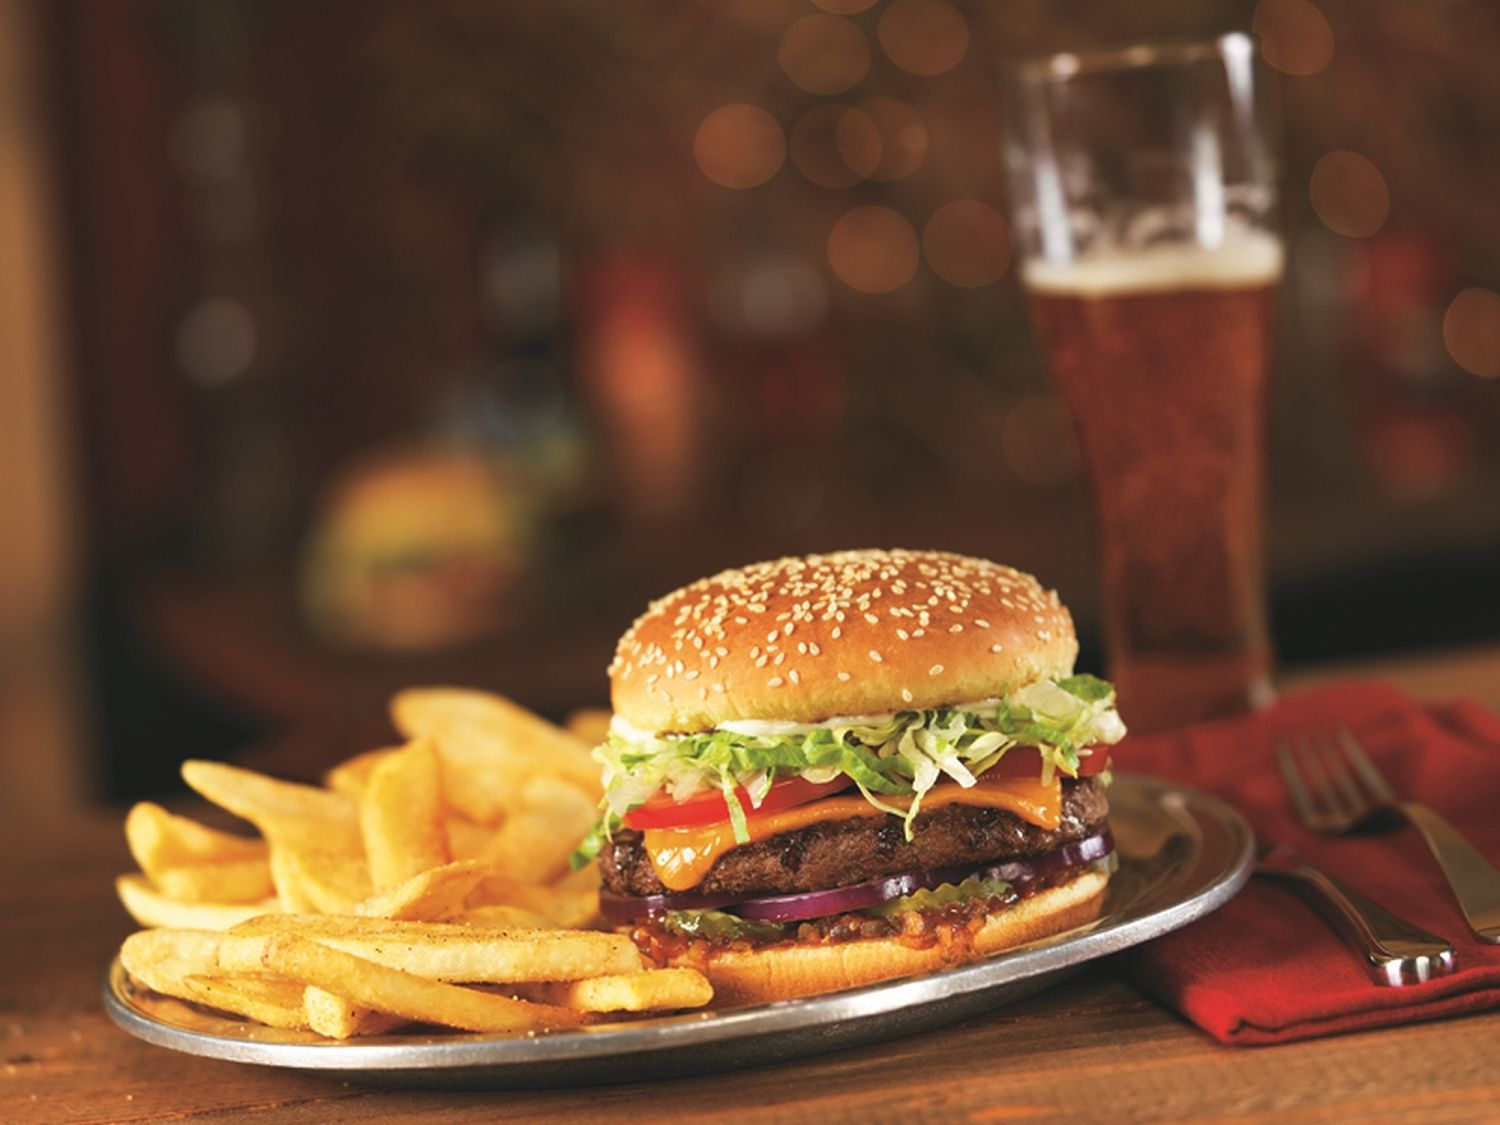 Red Robin Gourmet Burgers and Brews Celebrates National Cheeseburger Day with a $5 Gourmet Cheeseburger and Bottomless Steak Fries Deal